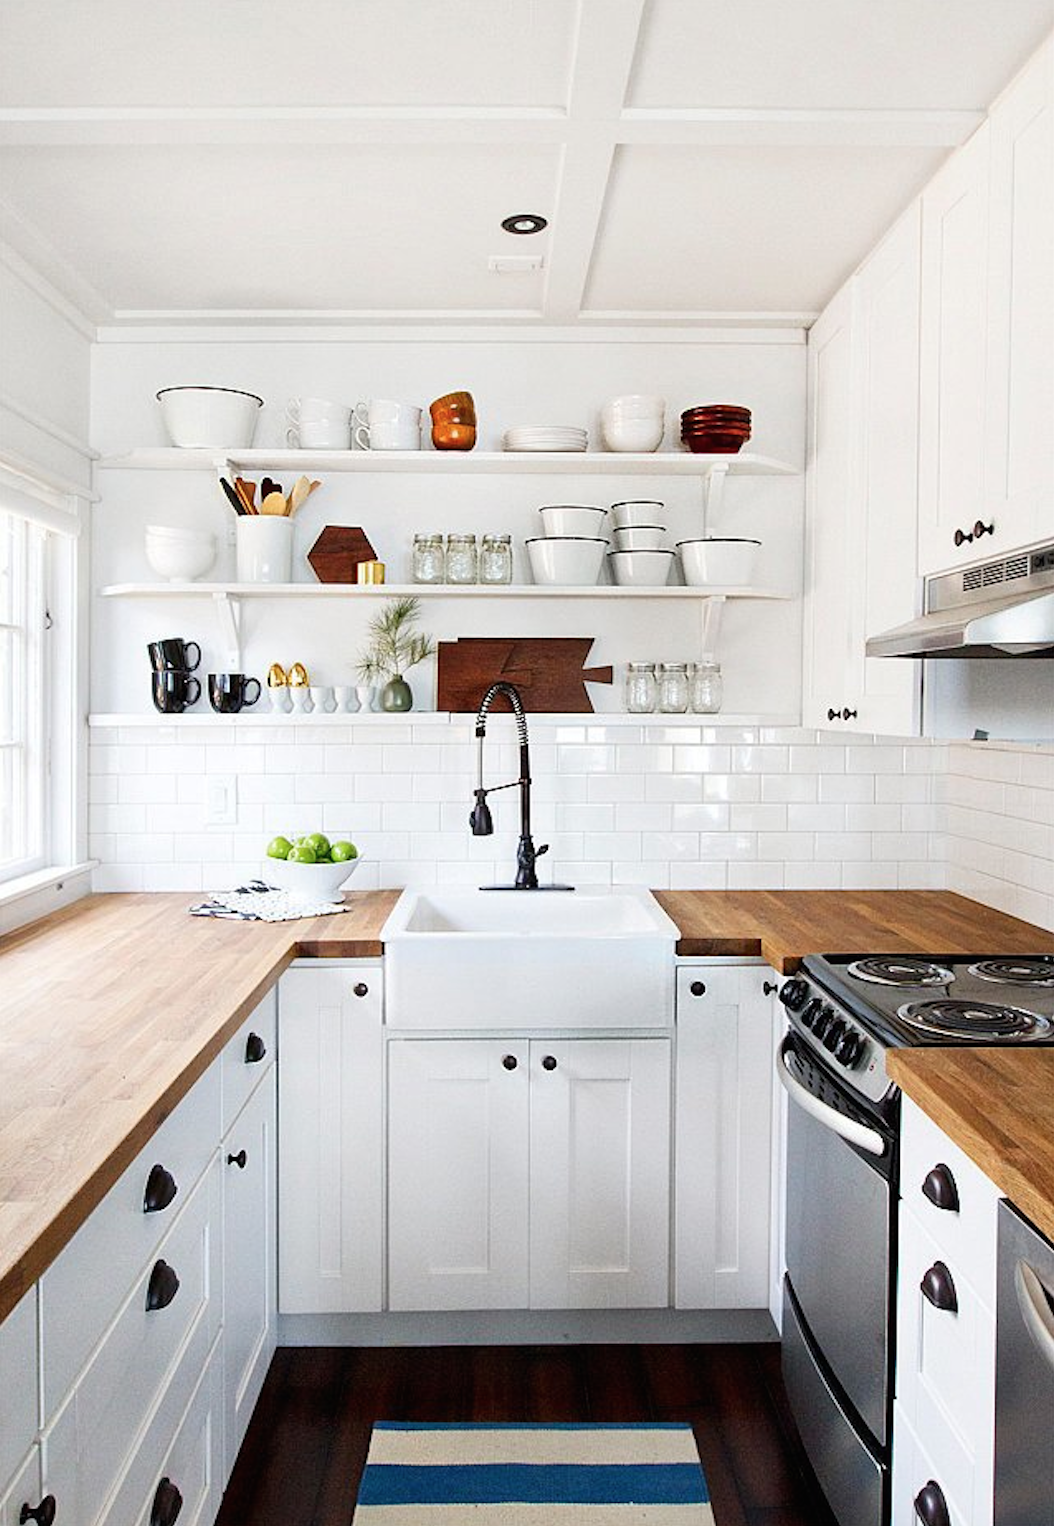 In her cabin kitchen sarah samuel of smitten studio installed ikeas affordable edge grain